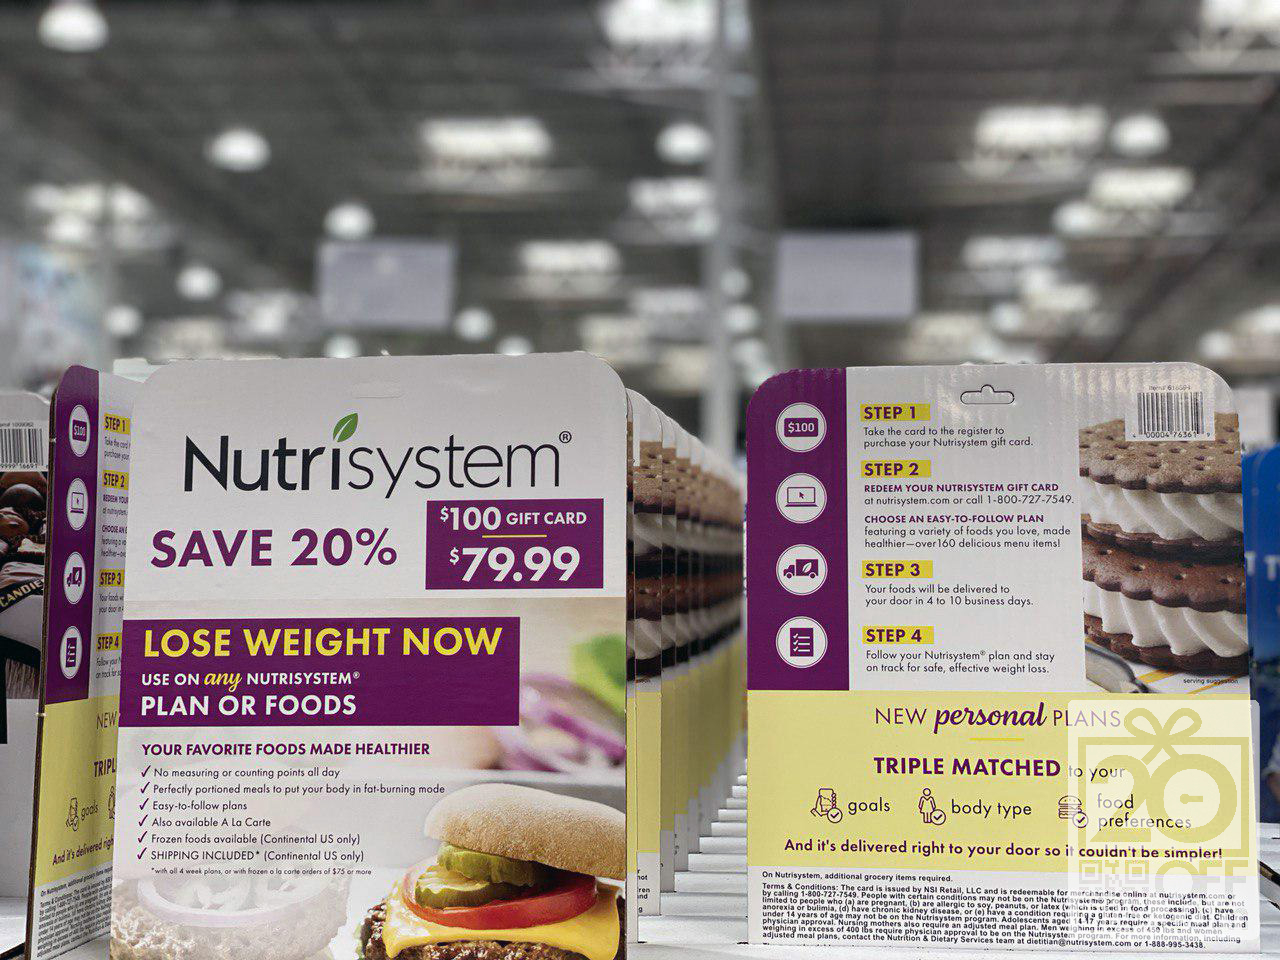 NutriSystem 20% off New Personal Plans